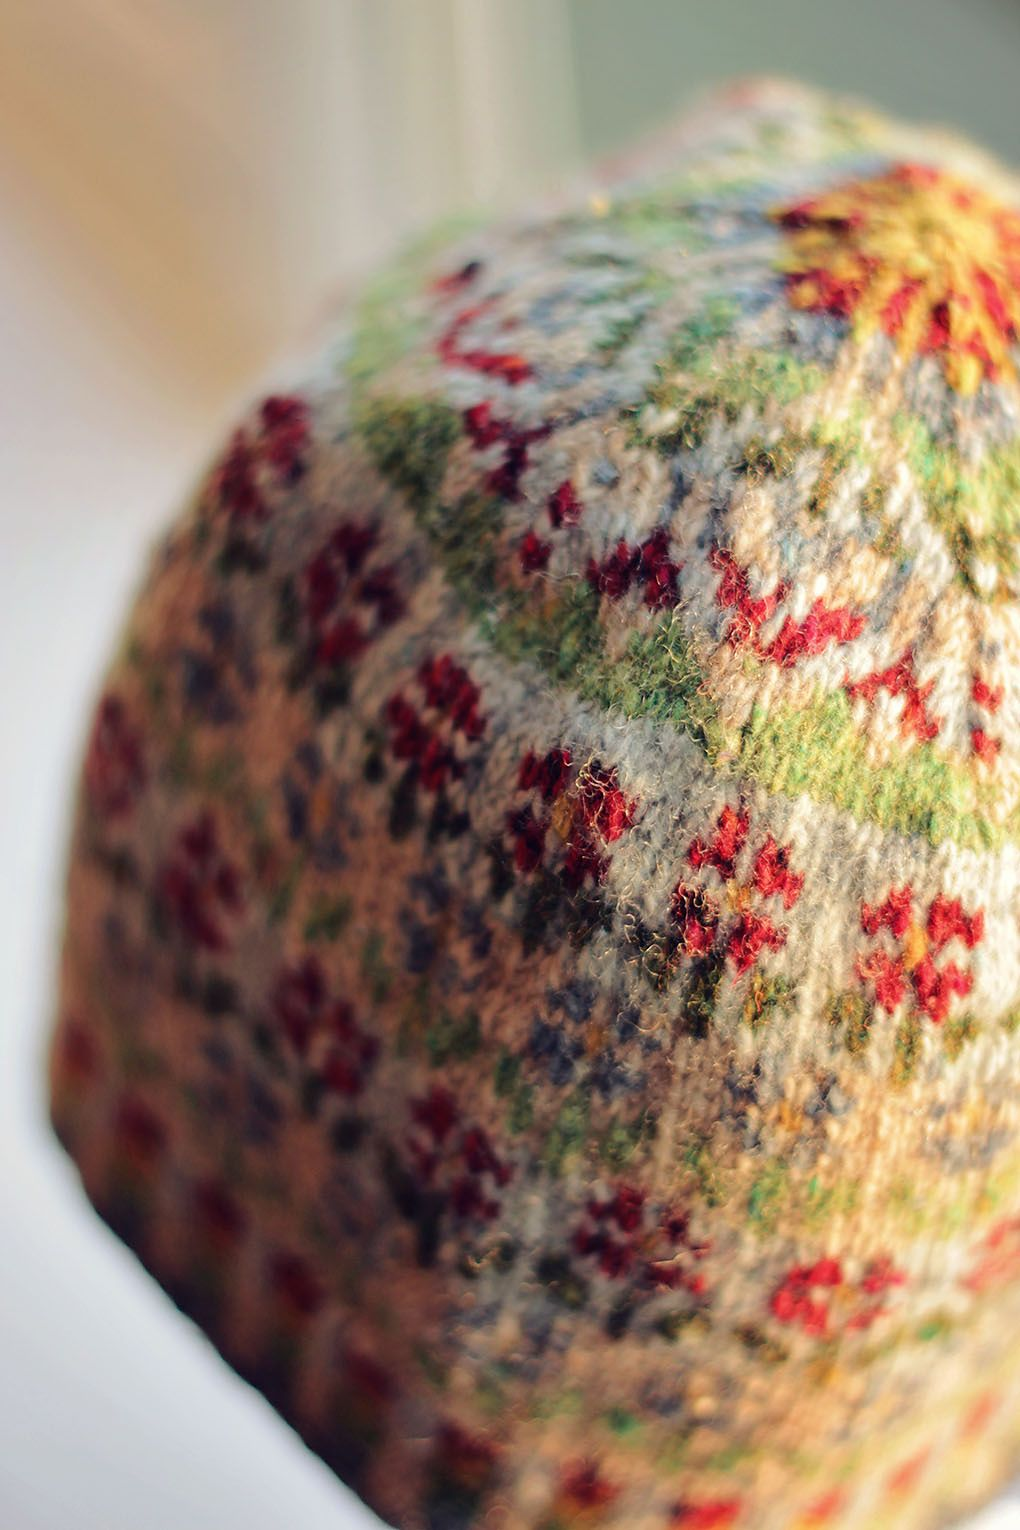 Amazing colorful fair-isle knitted hat - kitting project | Knitting ...